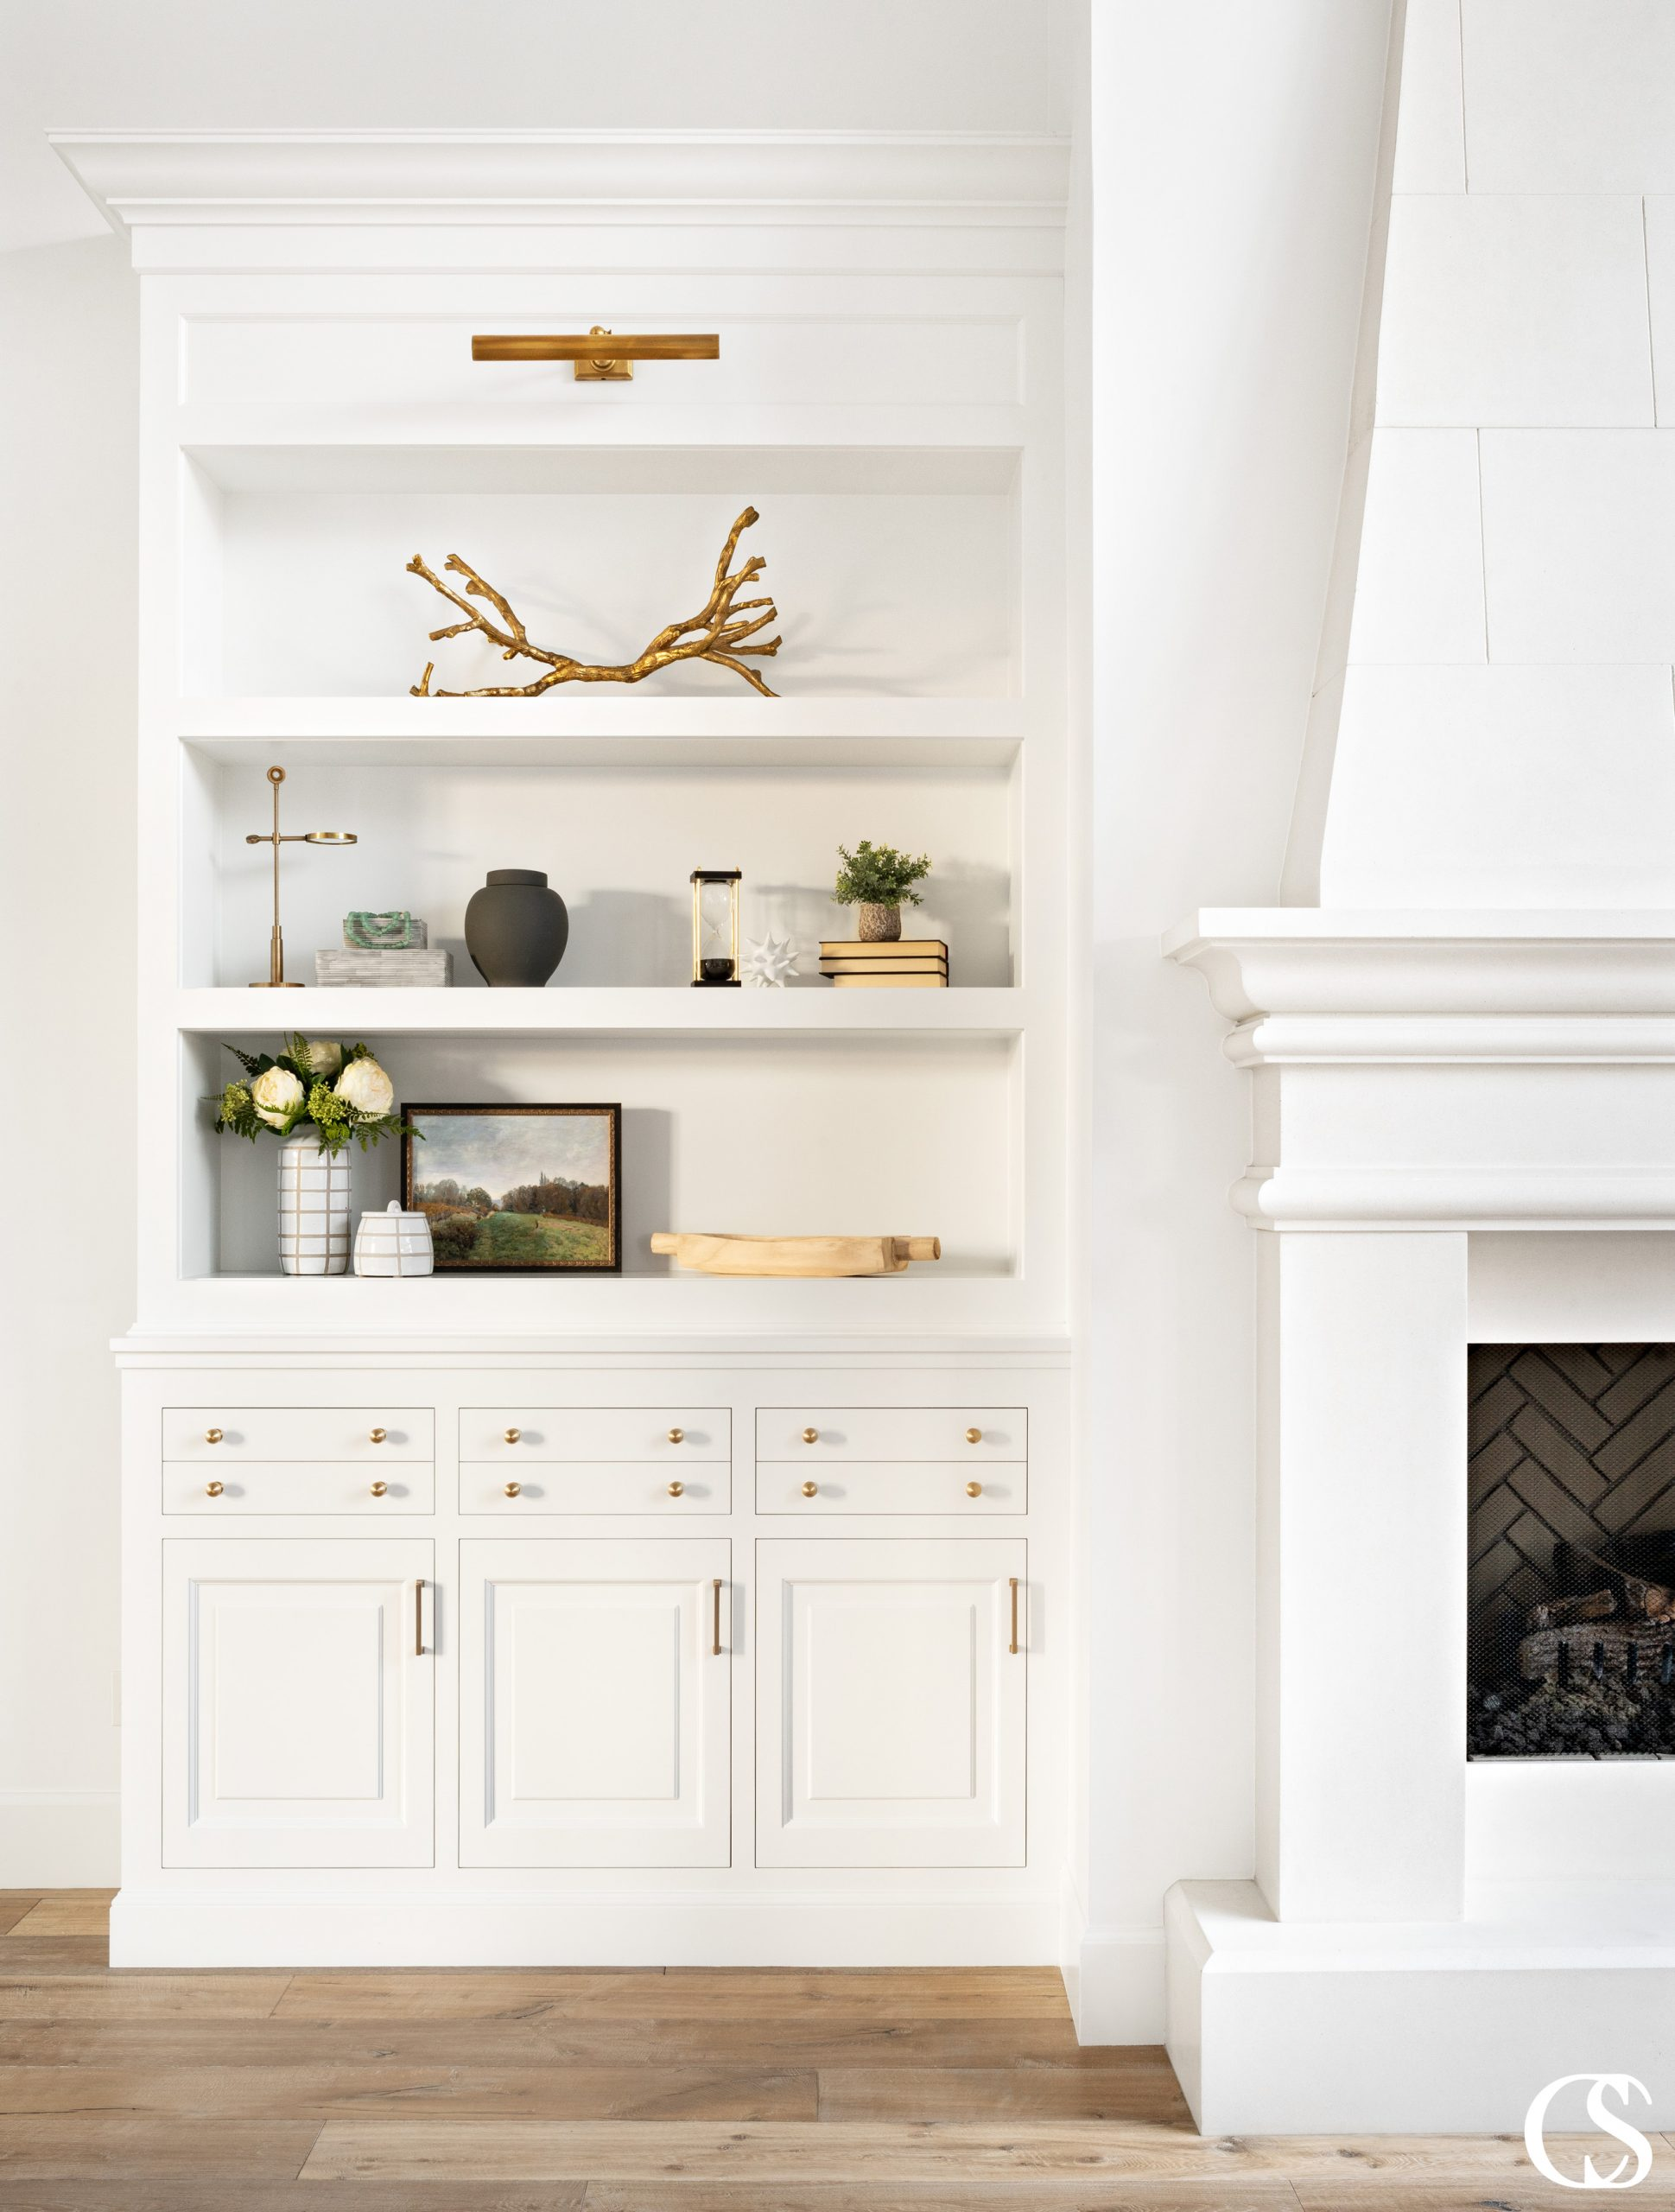 What do you plan on storing in your home's custom built-in cabinets? Without question, the best custom cabinets provide exactly what YOU need.